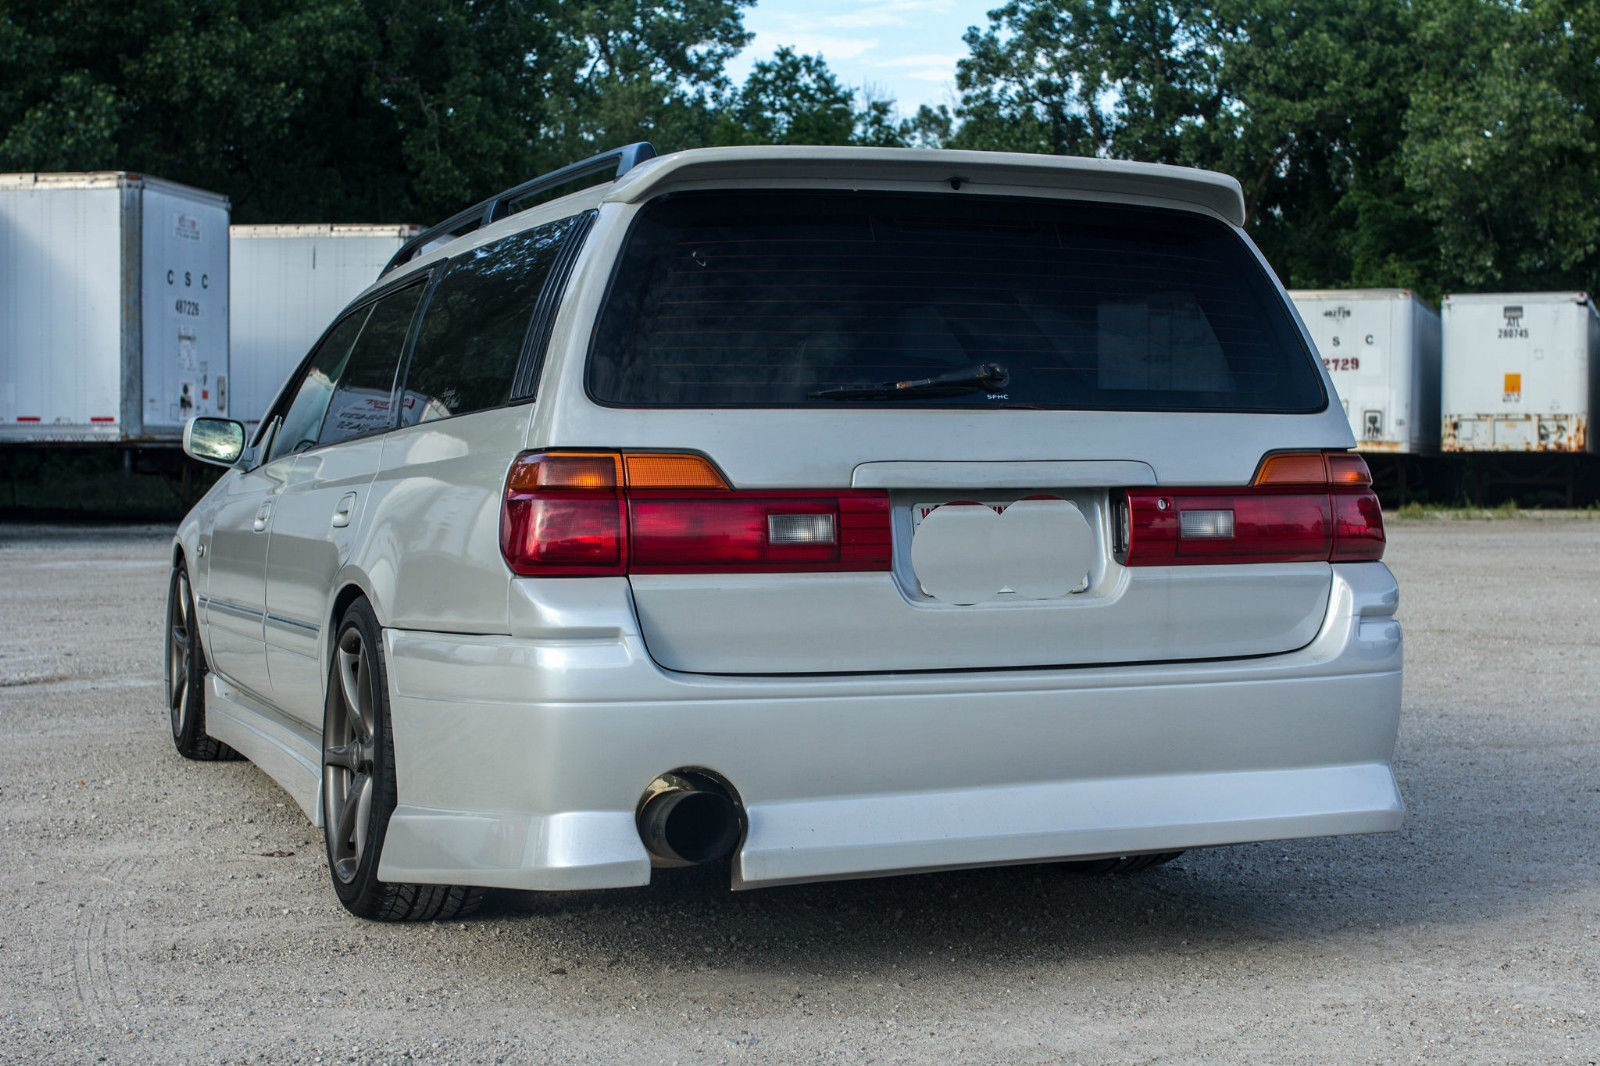 2015 Nissan Maxima For Sale >> Fake R34 Nisan GT-R Wagon for Sale Is Based on JDM Stagea - autoevolution